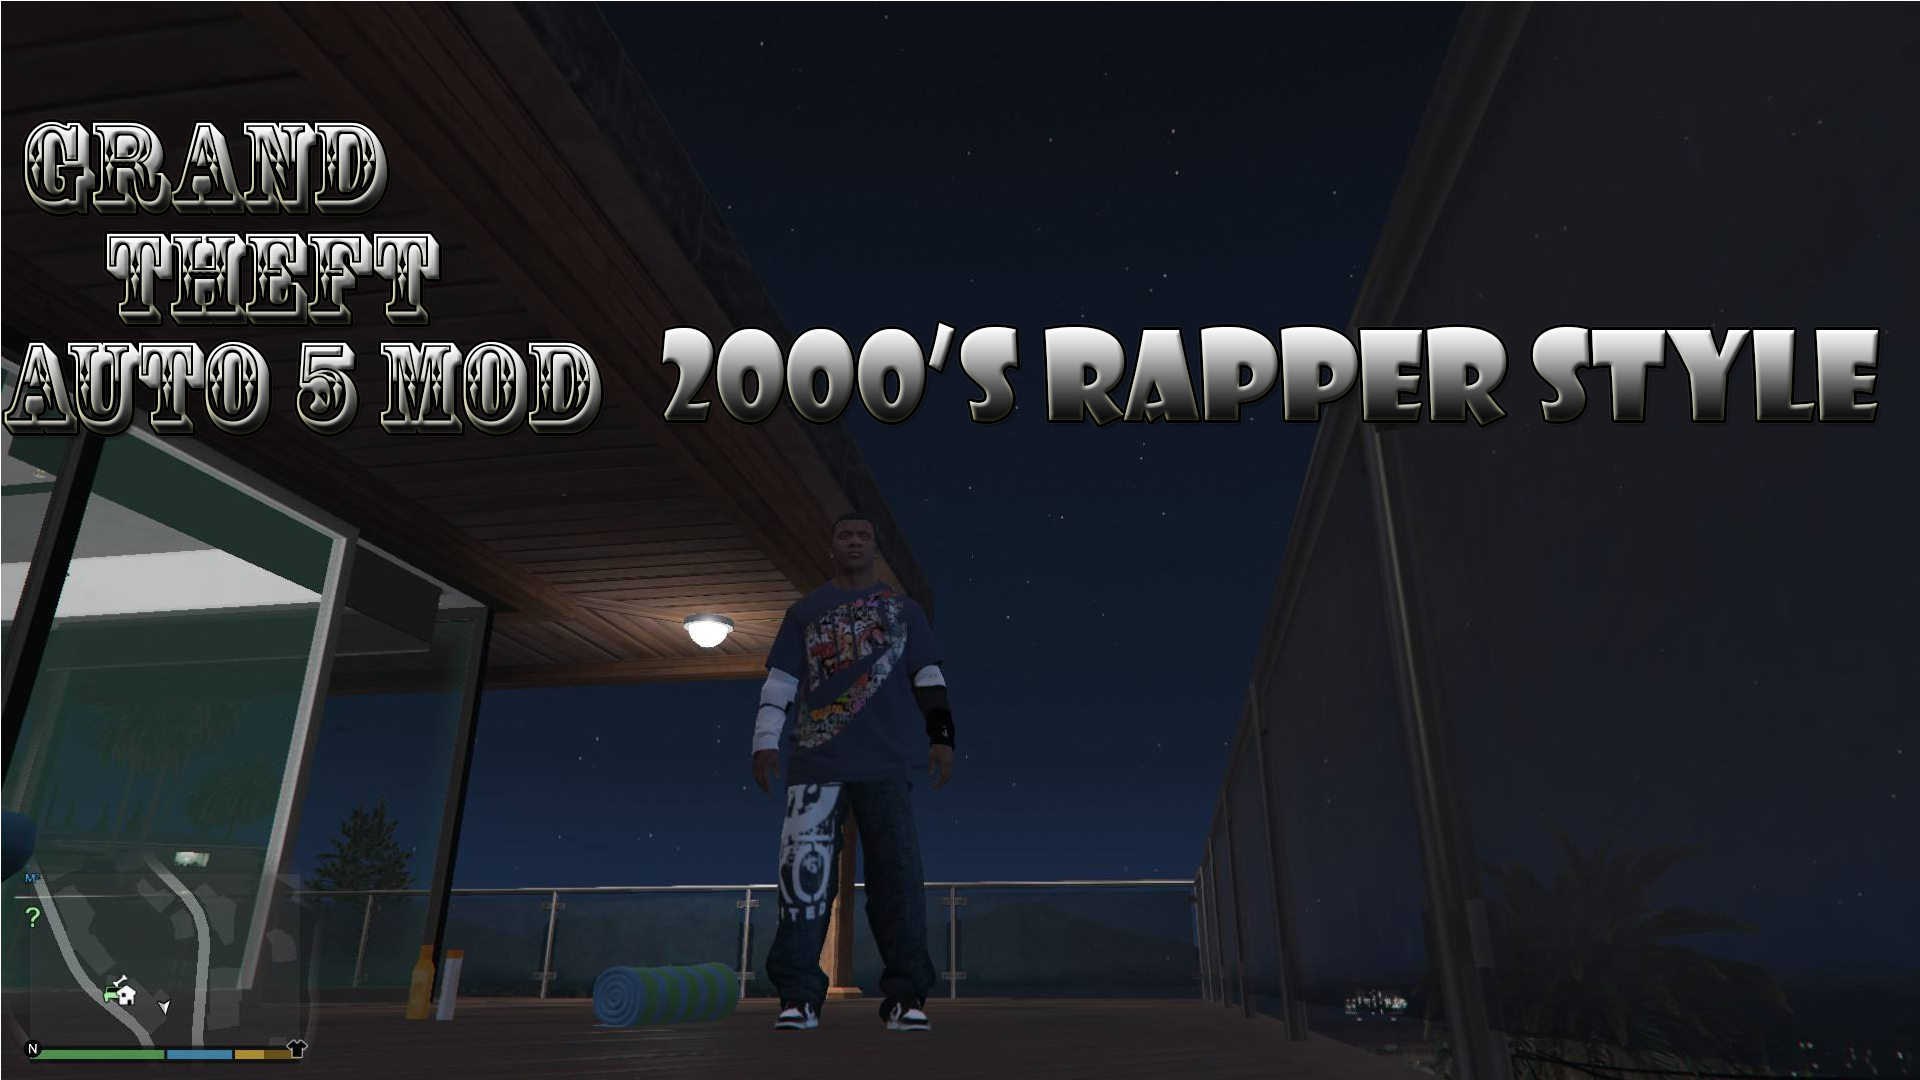 2000'sRapperstyle